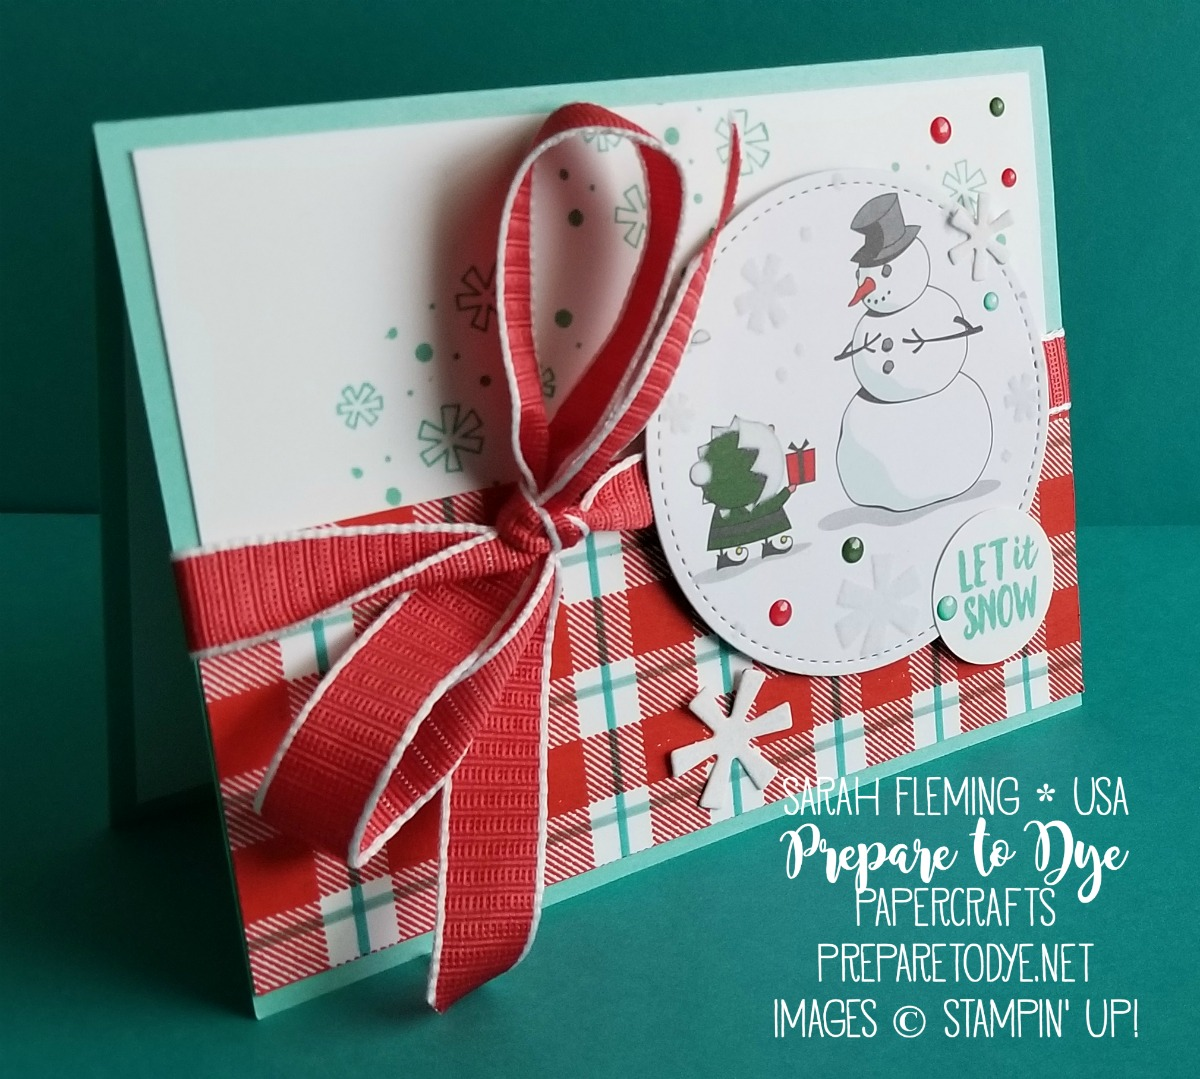 Stampin' Up! handmade Christmas card using Buffalo Check, Alpine Adventures, Candy Cane Season, Santa's Workshop paper, Santa's Signpost framelits, Stitched Shapes framelits, Santa's Workshop Enamel Shapes - Sarah Fleming - Prepare to Dye Papercrafts